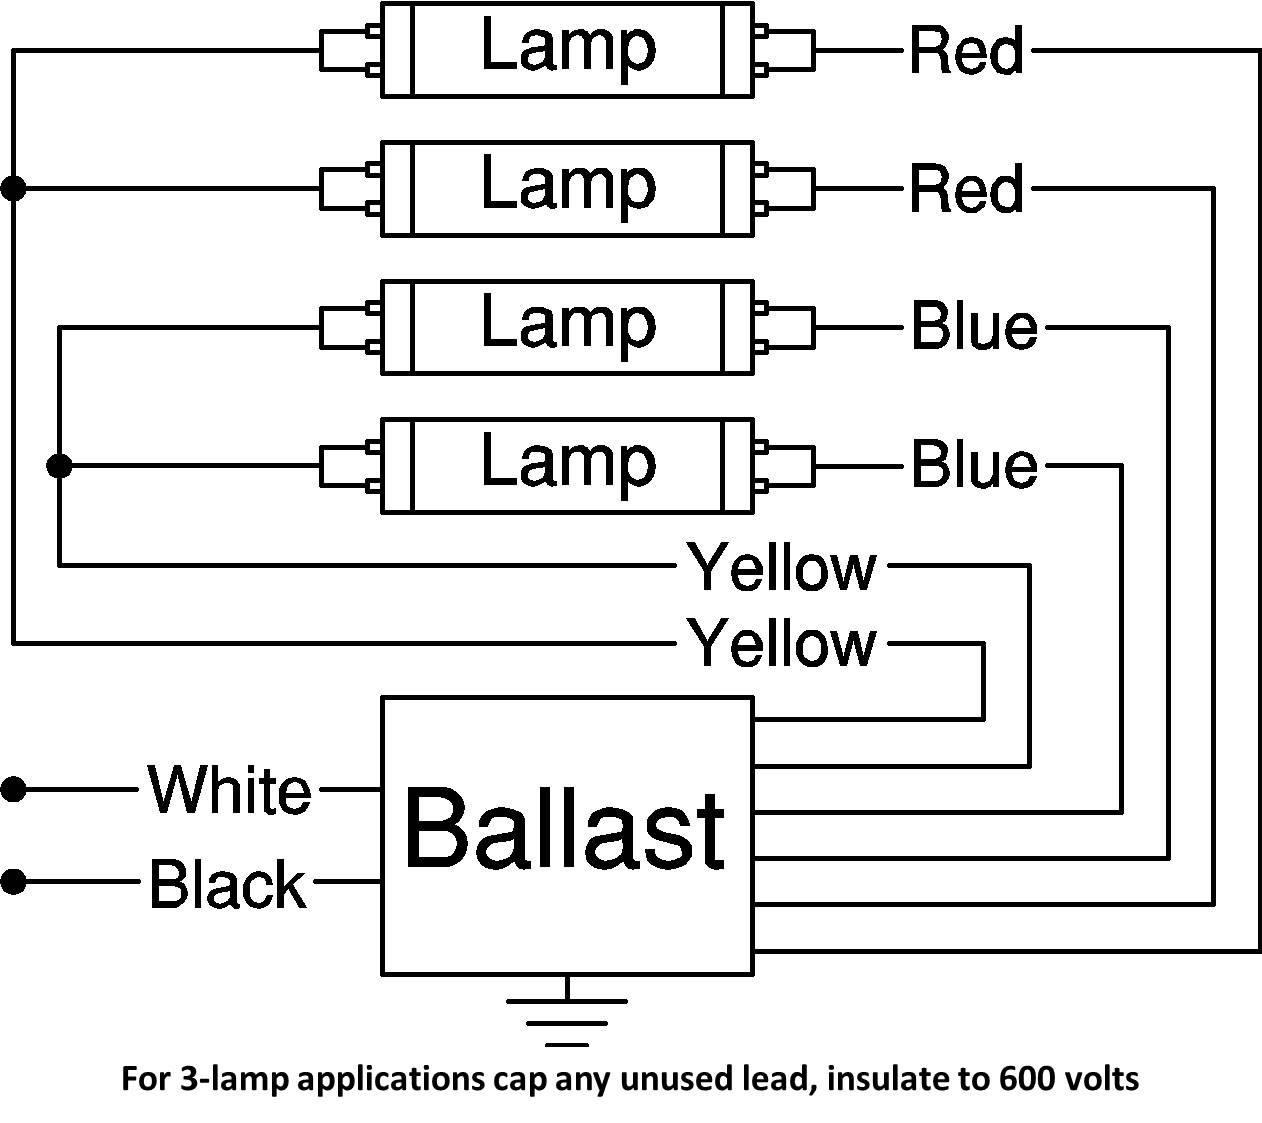 wiring diagram for 4 lamp ballast wiring image robertson 3p20160 fluorescent eballast 3 4 f32t8 linear lamp on wiring diagram for 4 lamp ballast